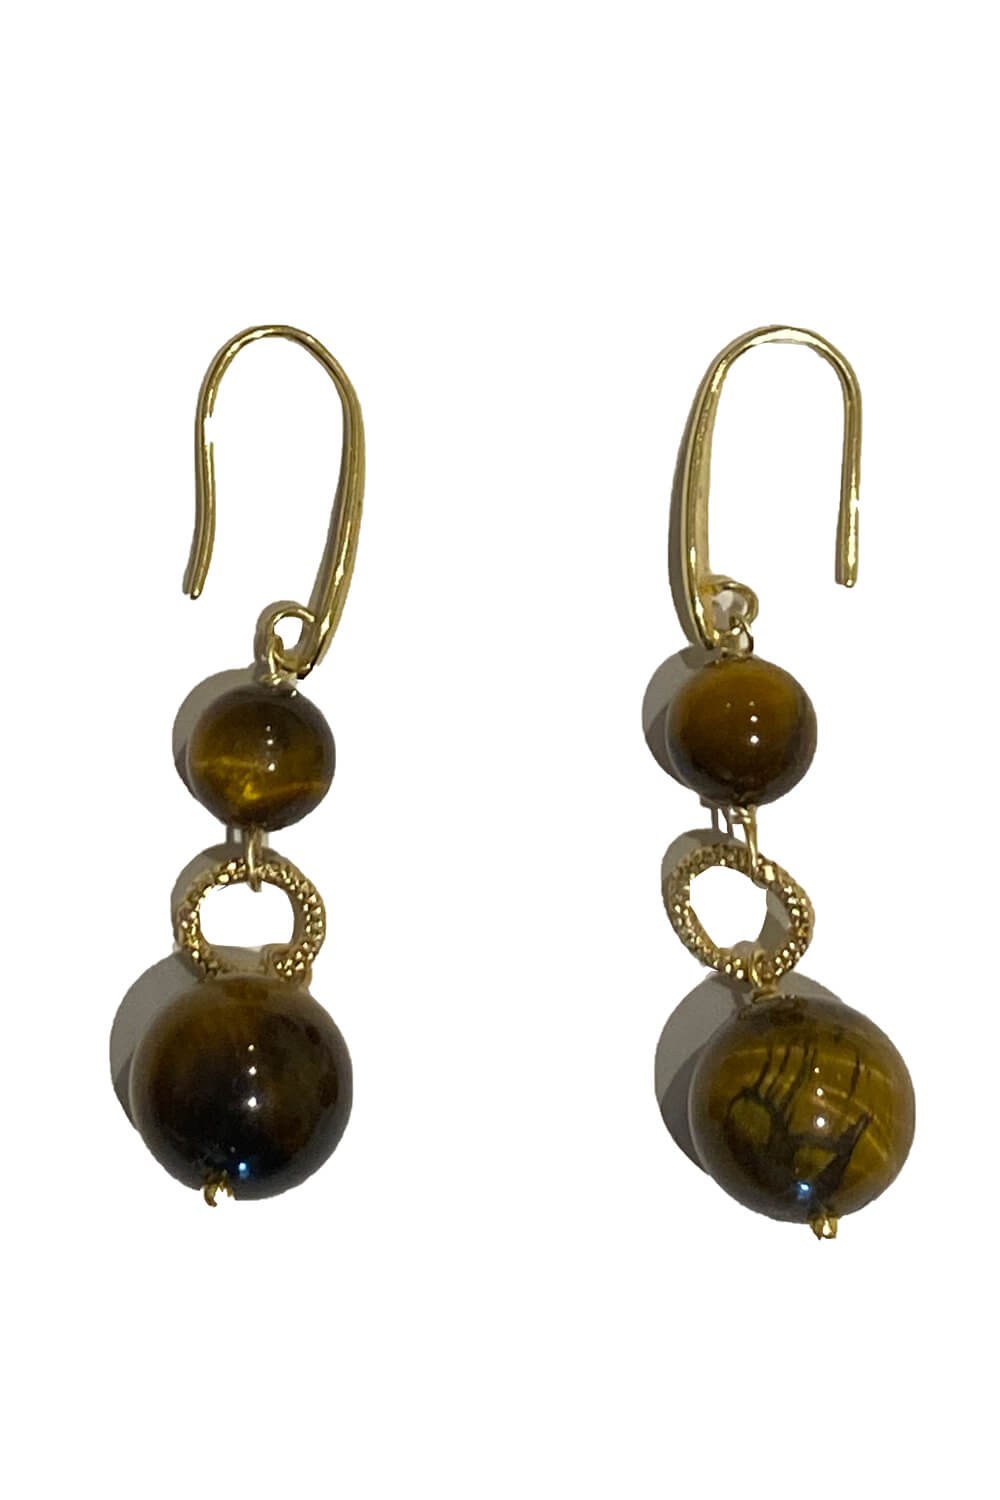 earrings with tiger eye stones and gold plated 925 sterling silver TORINO